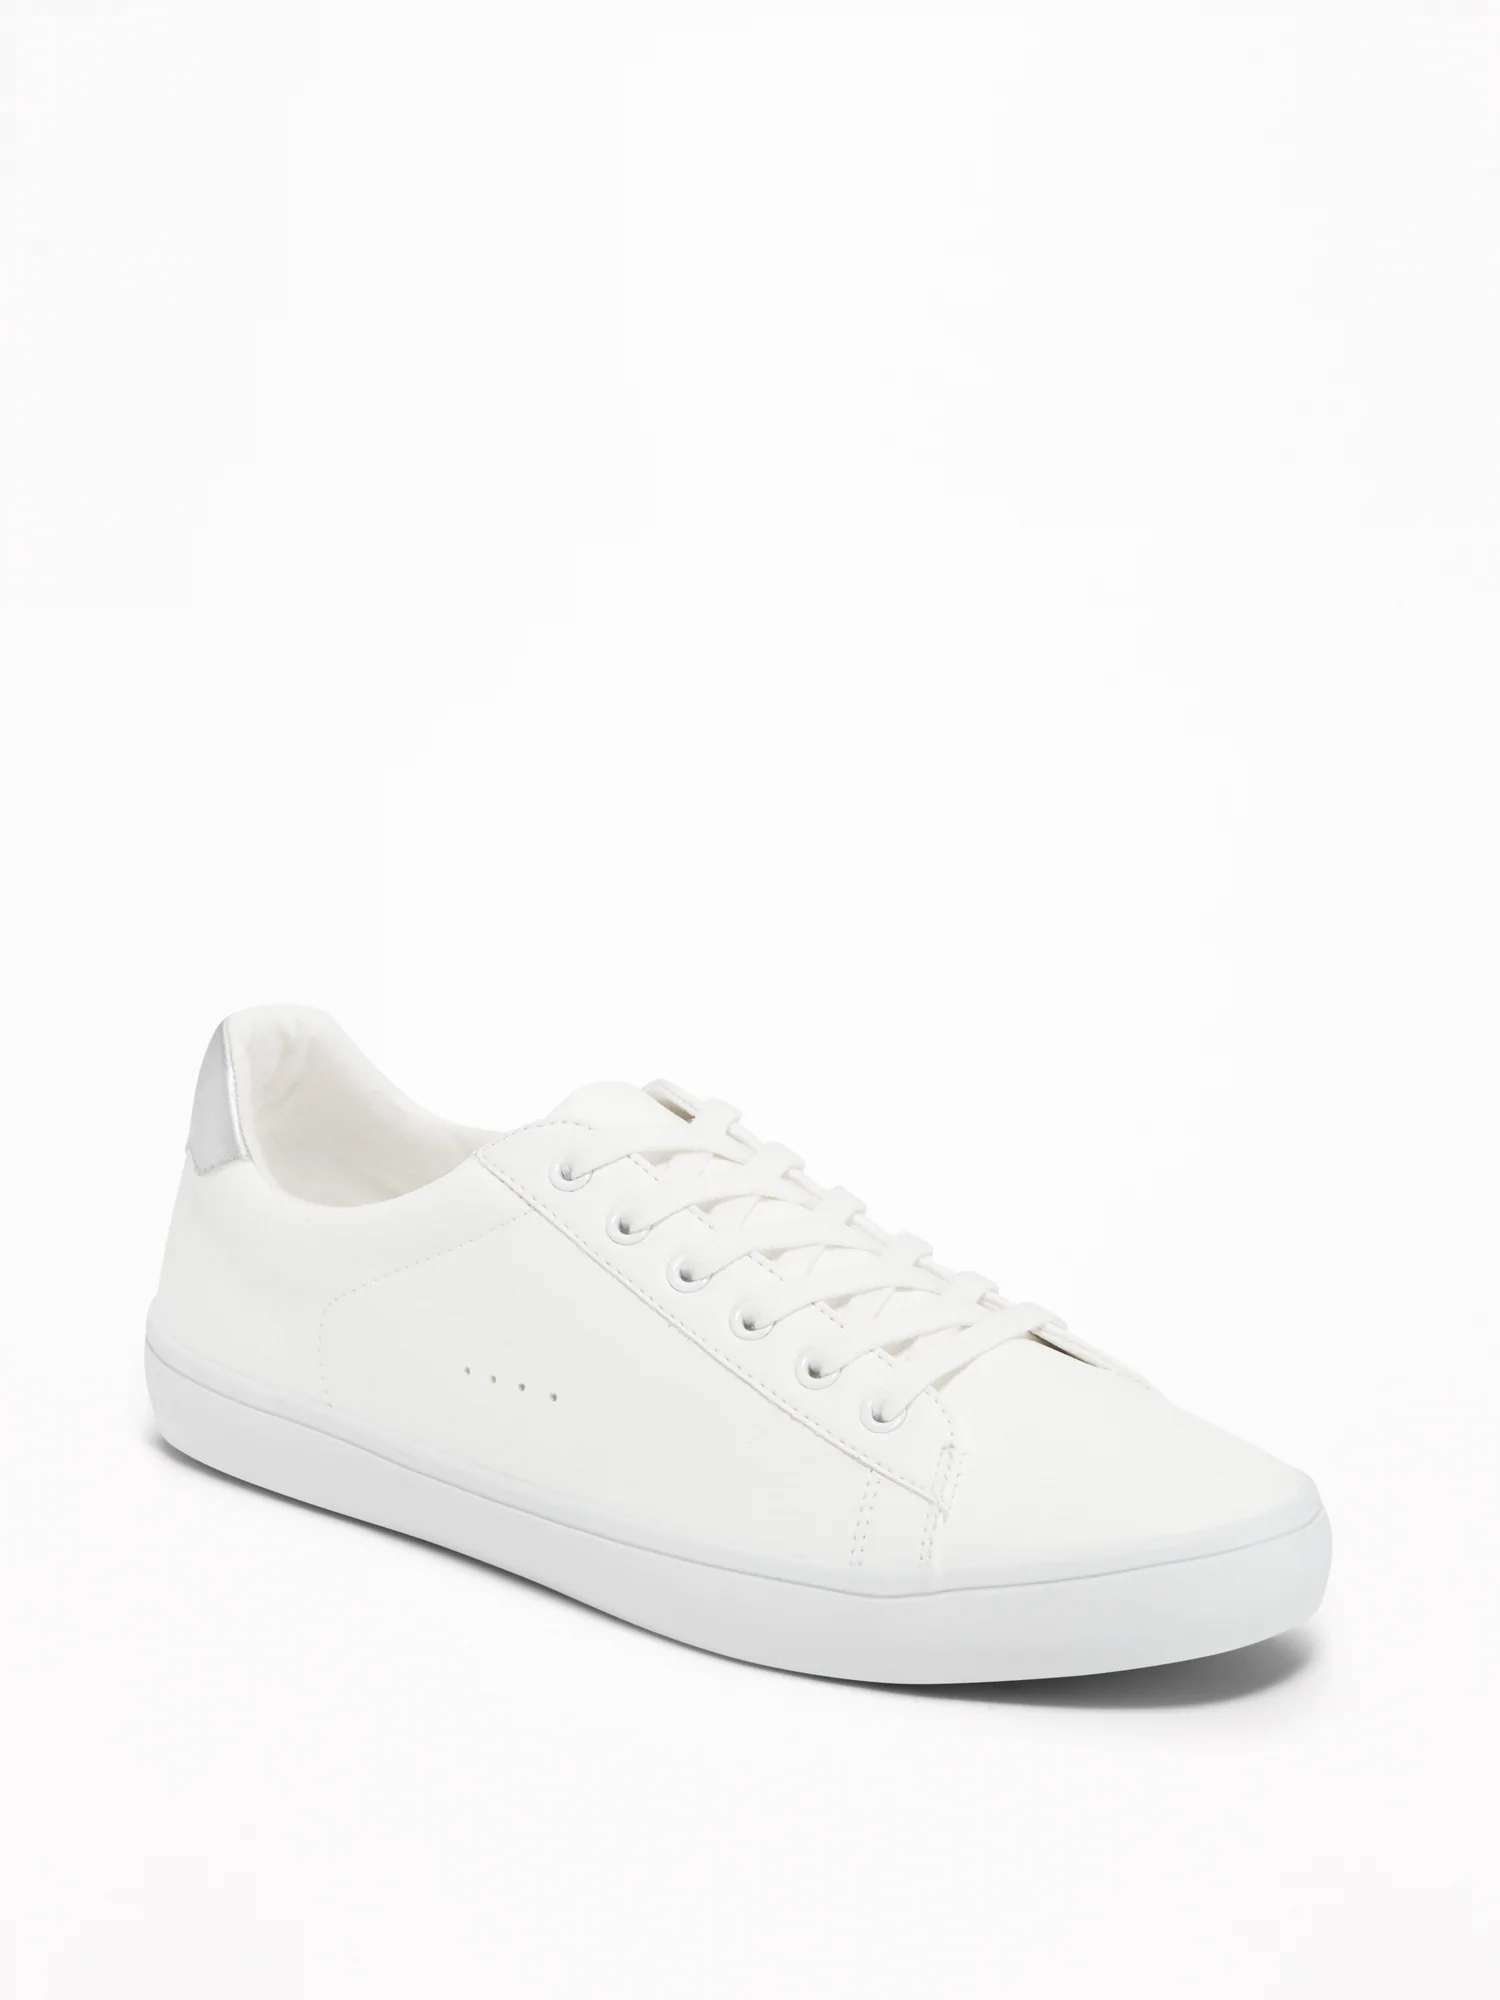 Faux-Leather Classic Sneakers for Women - Brigth White